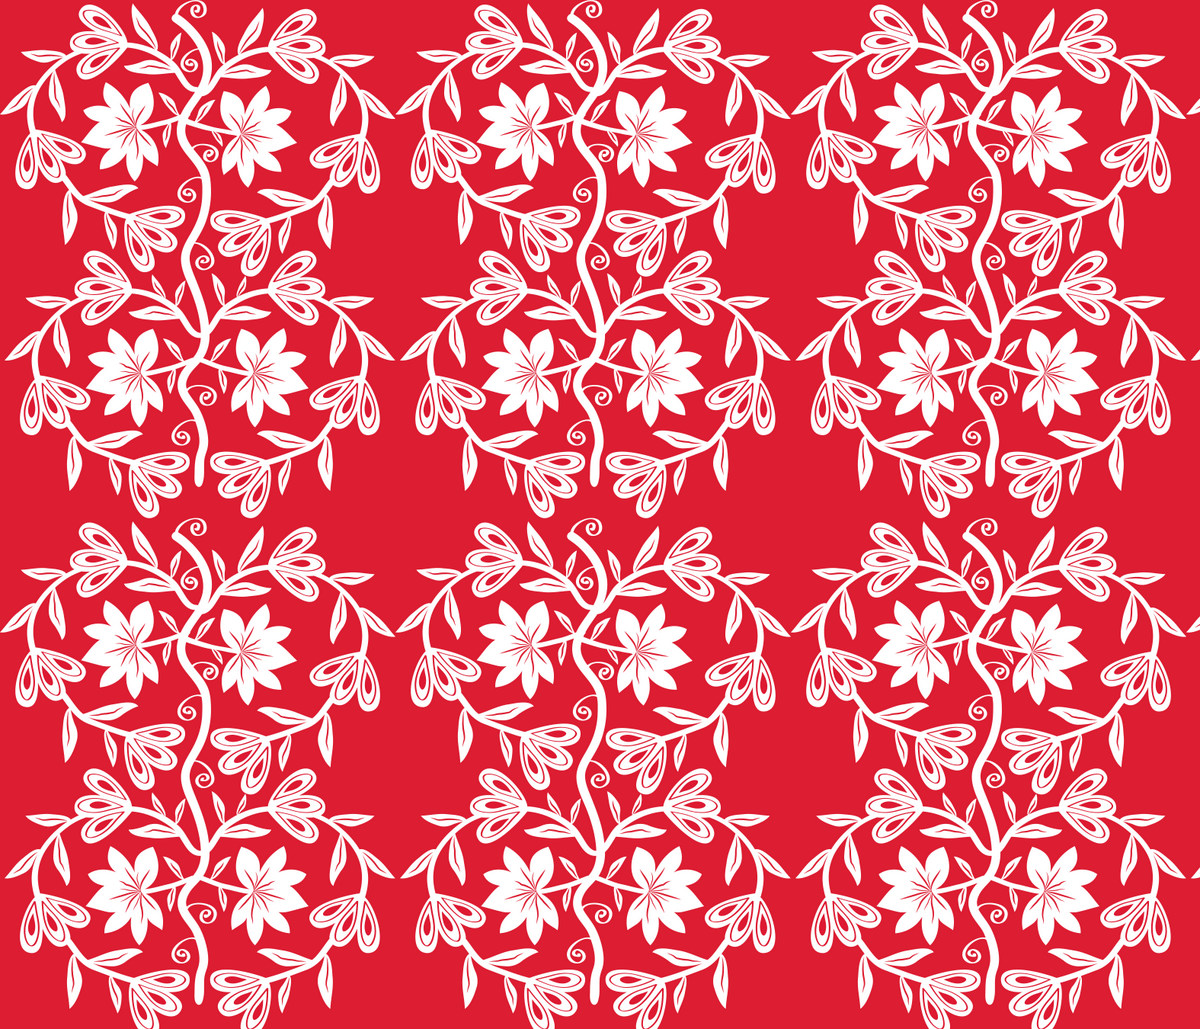 ... Chinese Paper Cutting inspired design for the Spoonflower competition